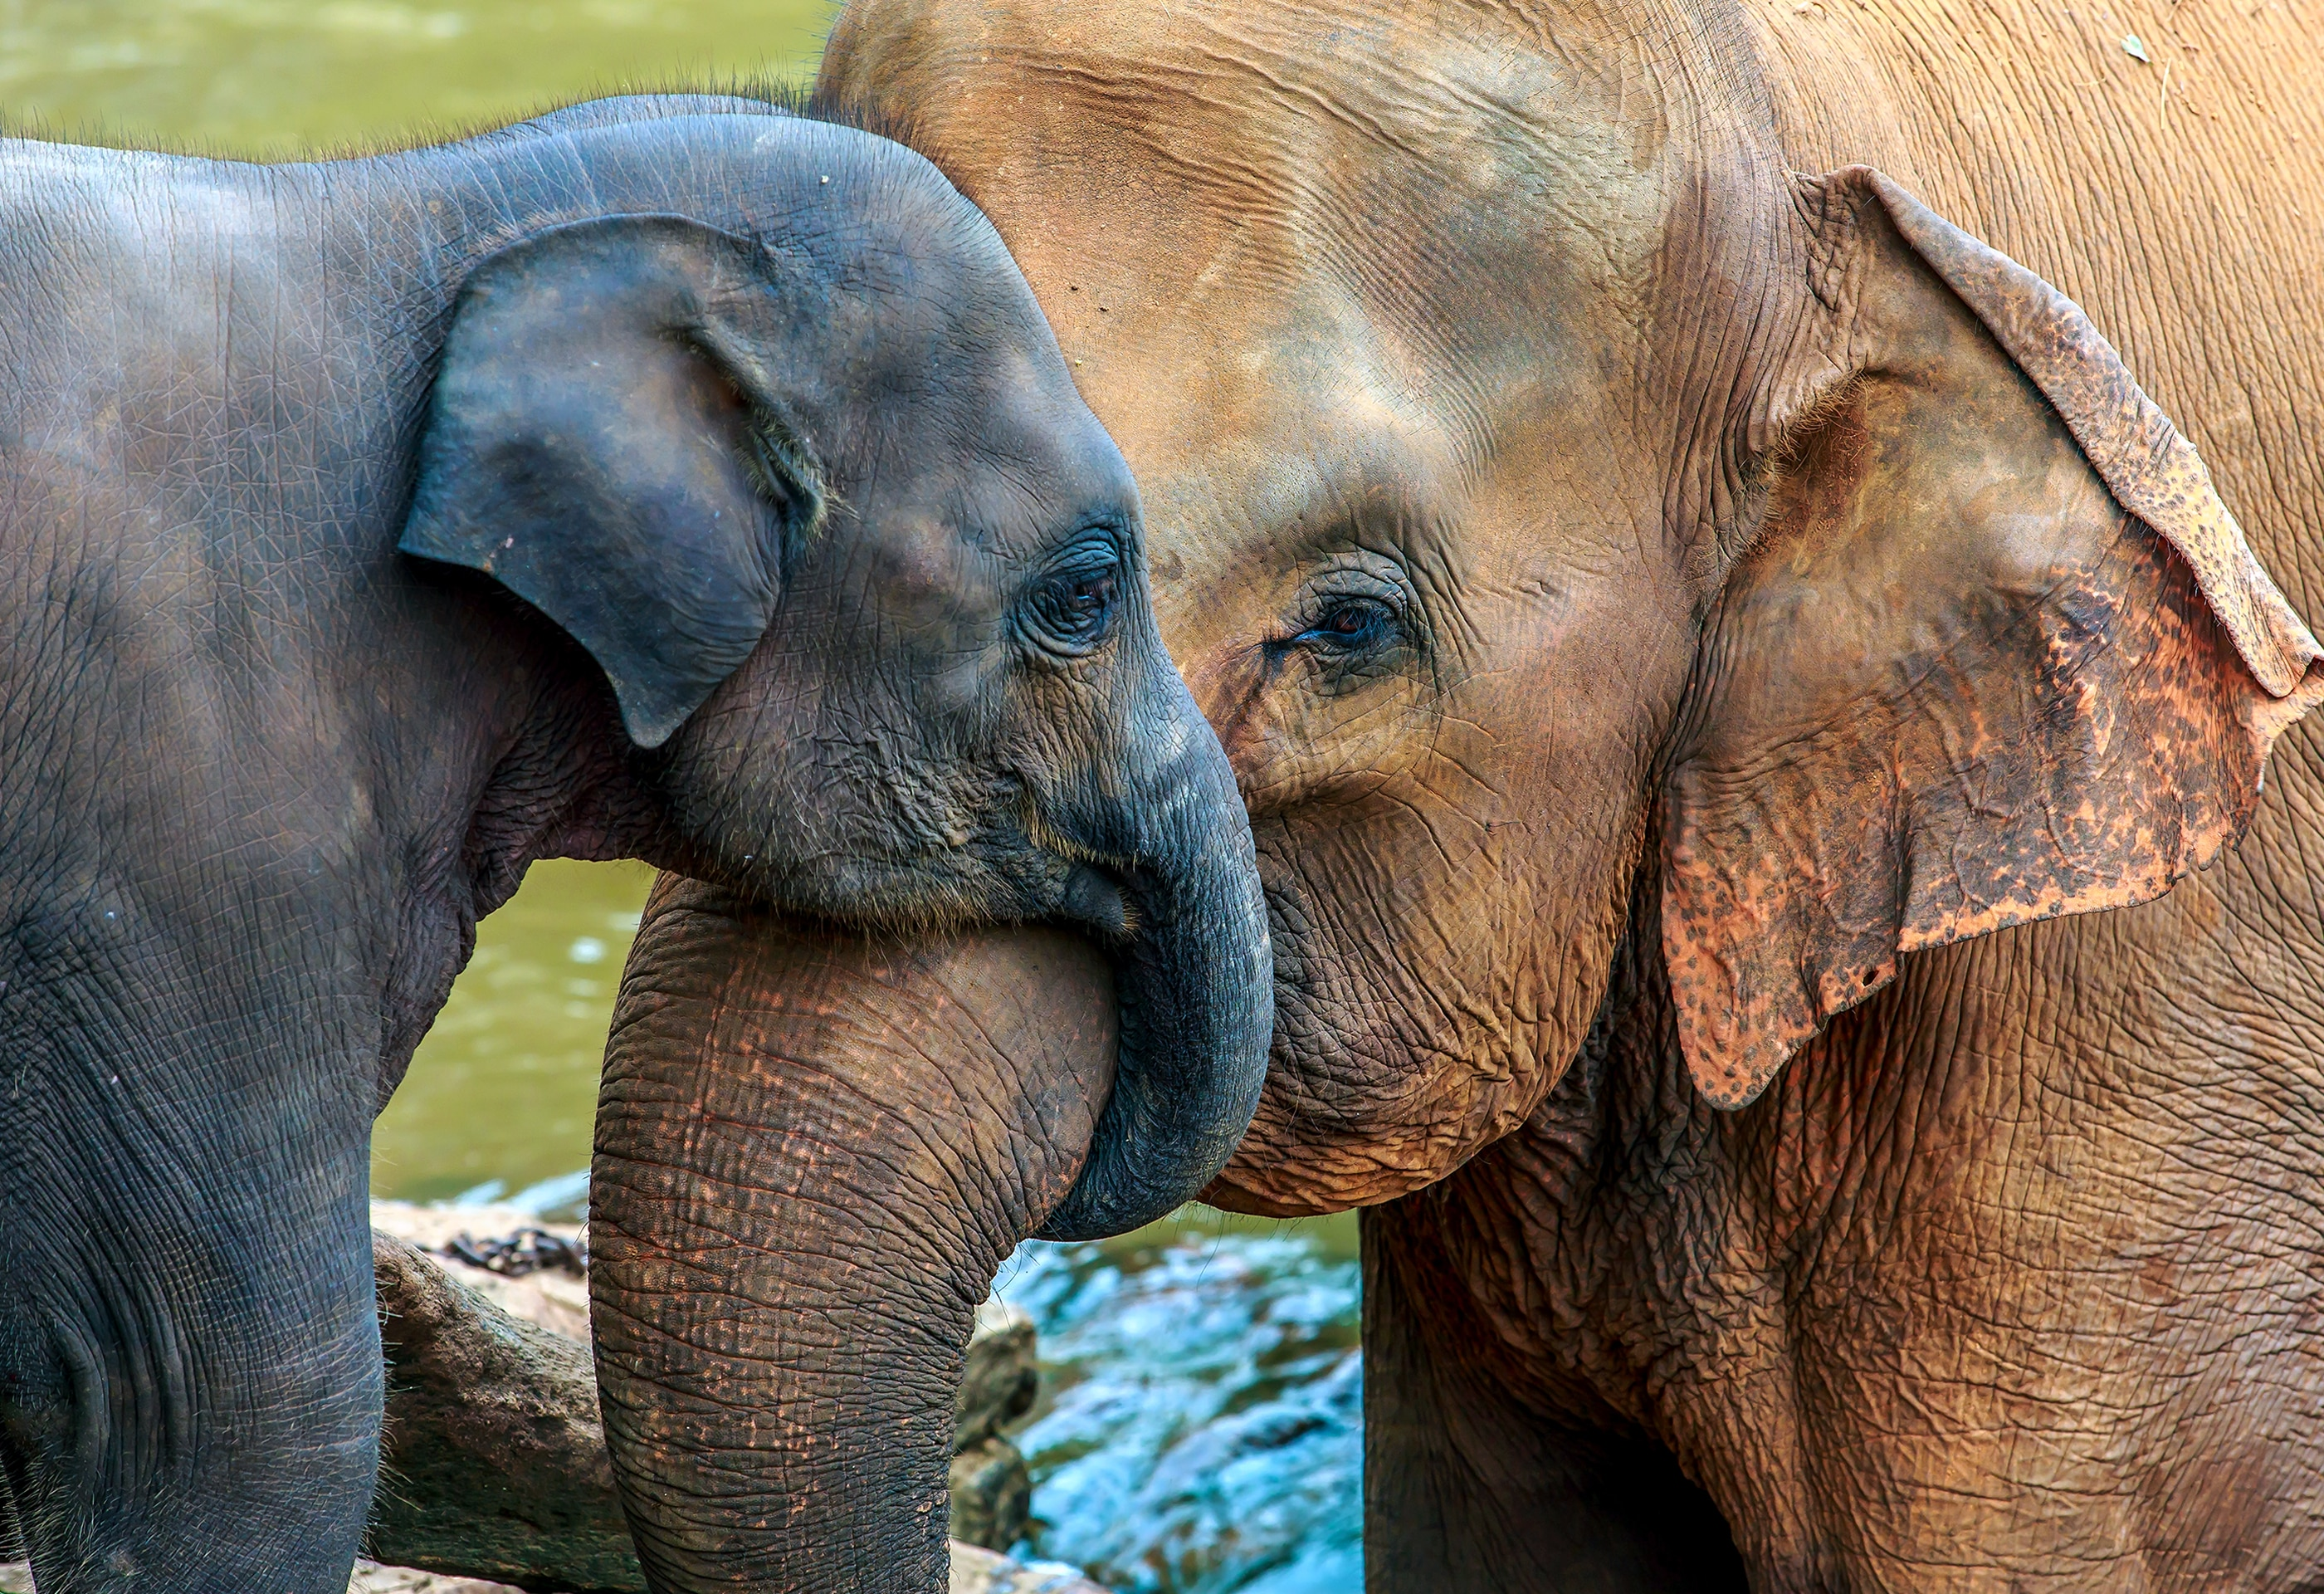 Elephant and baby (Shutterstock)